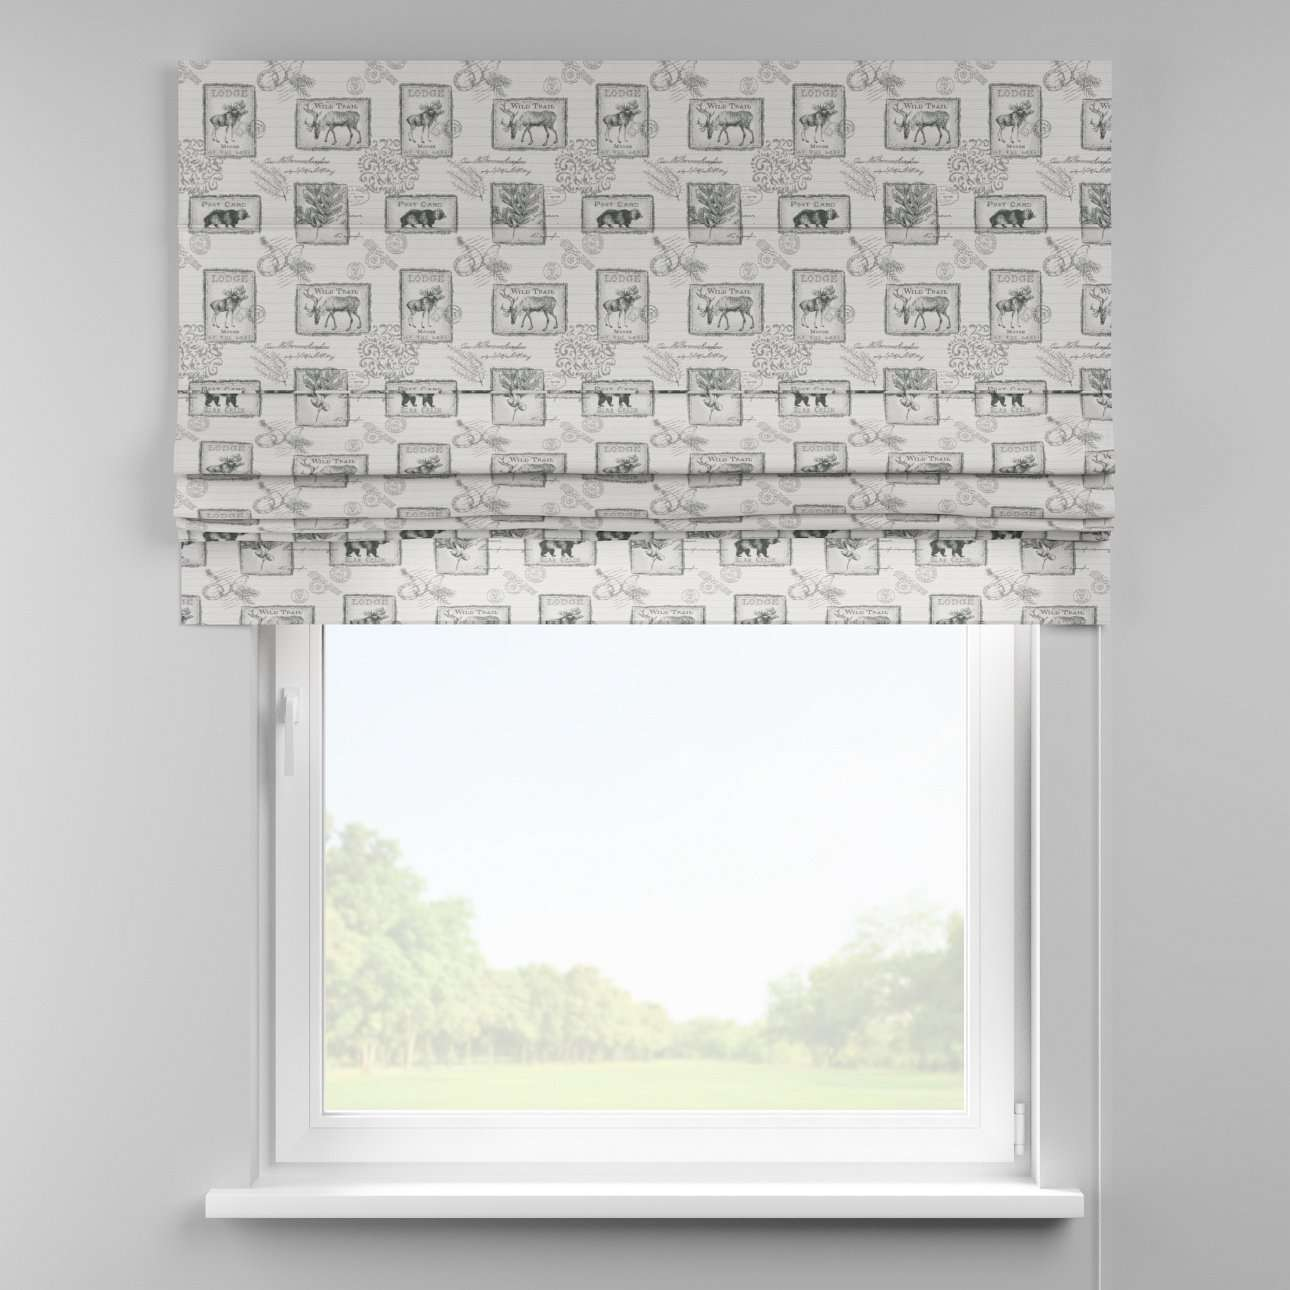 Padva roman blind  80 x 170 cm (31.5 x 67 inch) in collection Christmas , fabric: 630-18